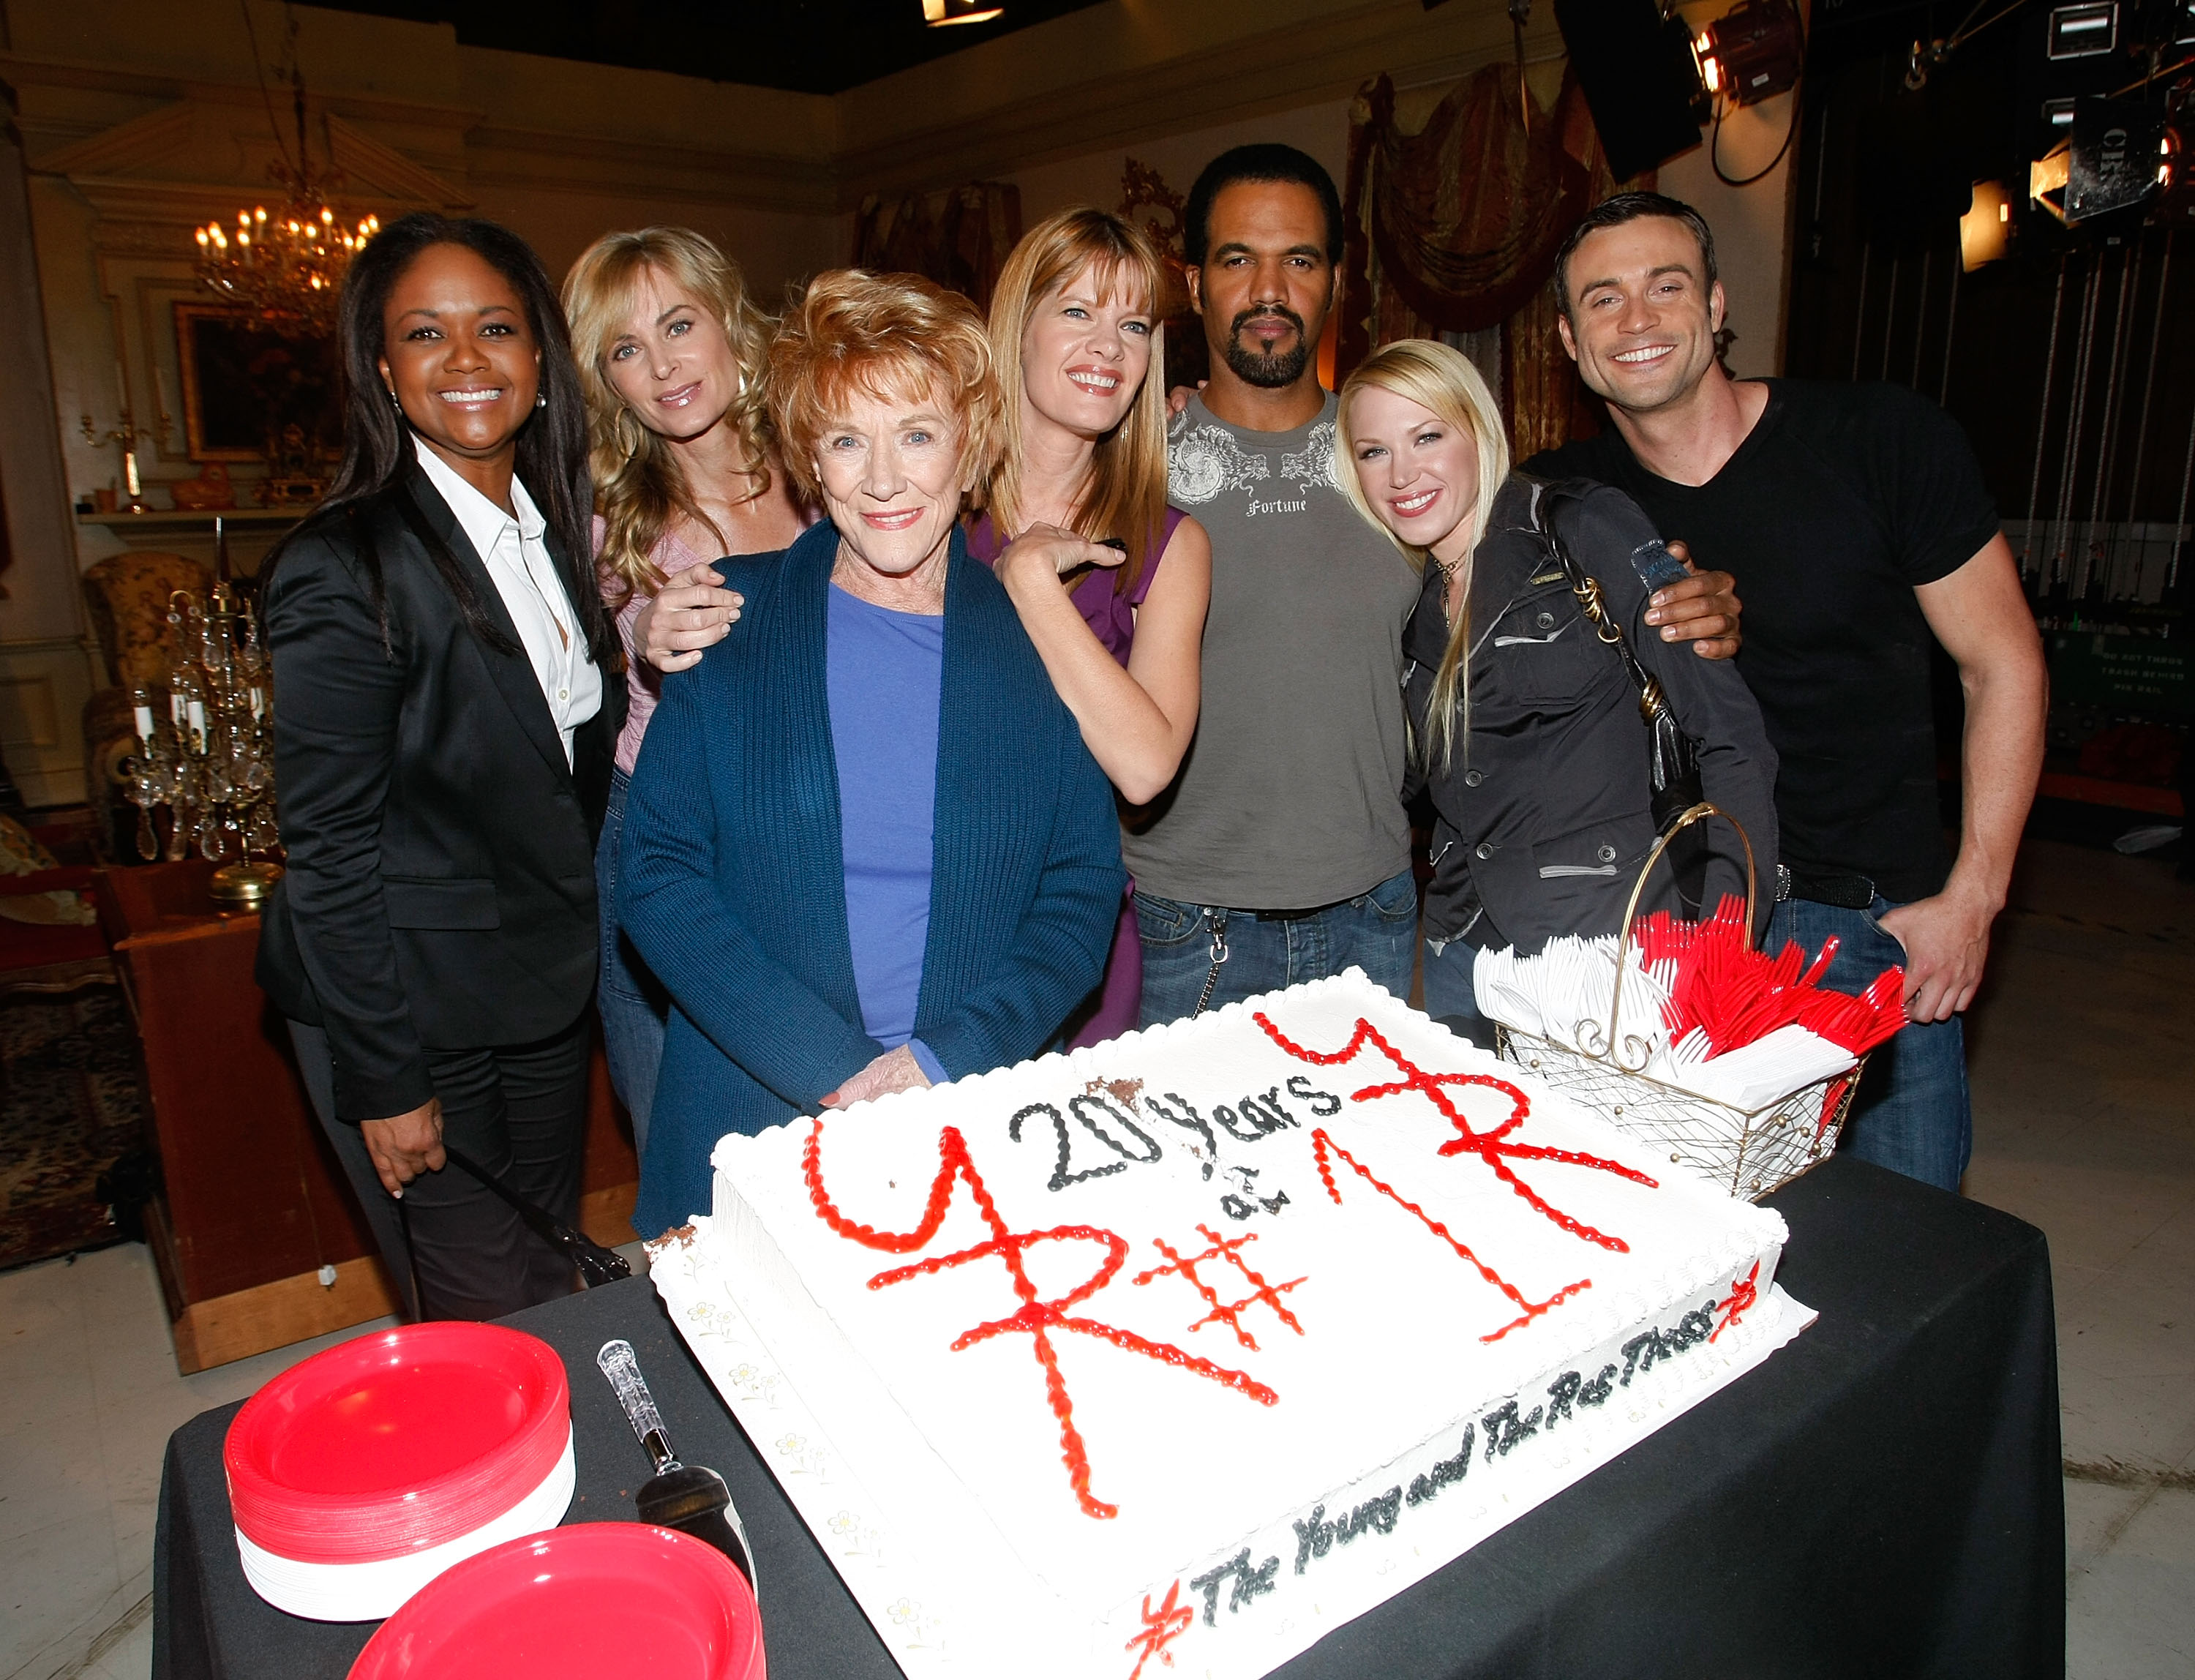 (L-R) Cast members of 'The Young and the Restless' actors Tonya Lee Williams, Eileen Davidson, Jeanne Cooper, Michelle Stafford, Kristoff St. John, Adrienne Frantz and Daniel Godbard attend the cake cutting ceremony celebrating 'The Young and the Restless' staying the number one rated daytime drama series for twenty years straight at CBS Studios on December 11, 2008 in Los Angeles, California. (Getty)